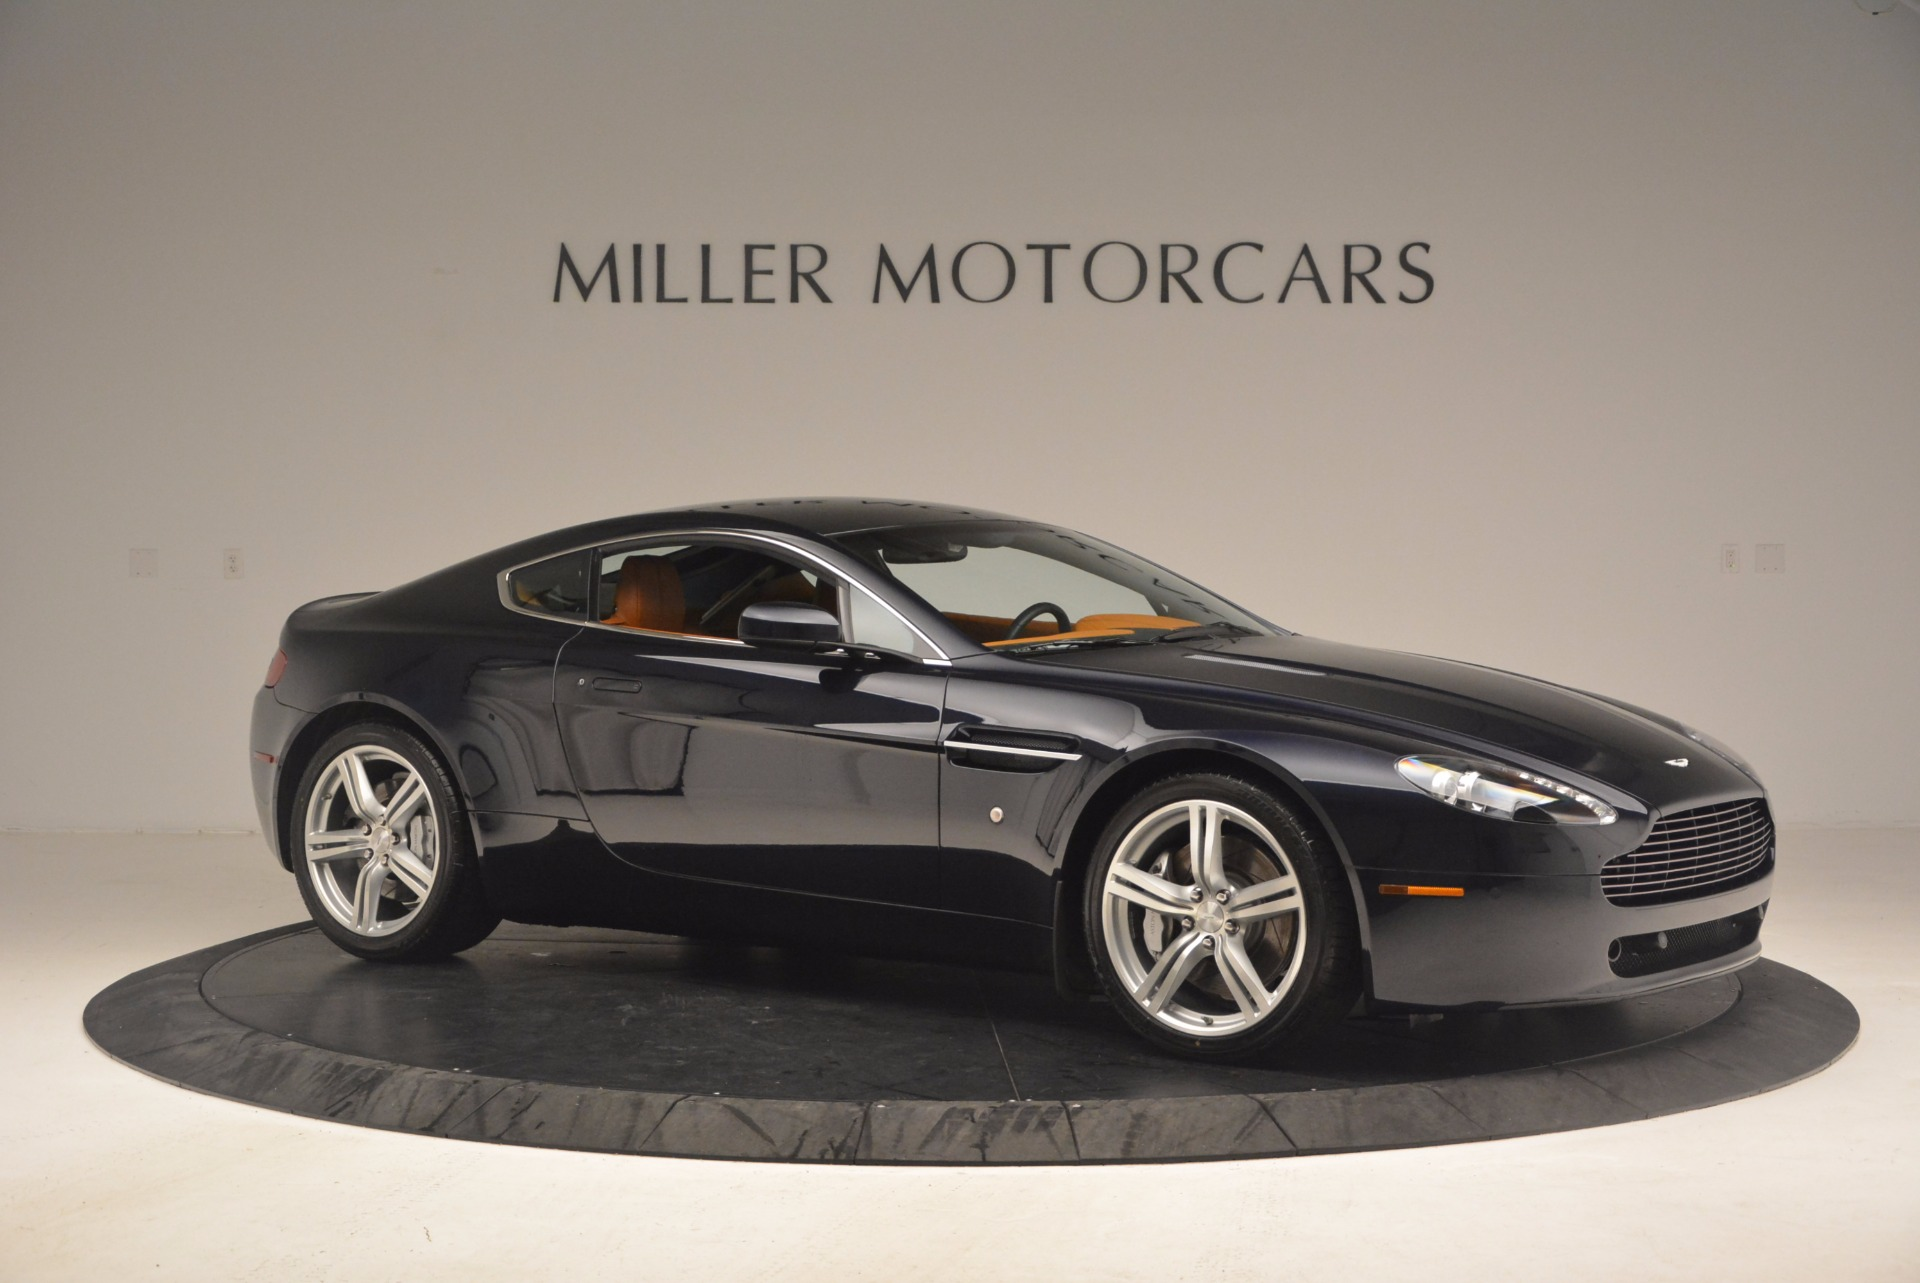 Used 2009 Aston Martin V8 Vantage  For Sale In Westport, CT 1183_p10